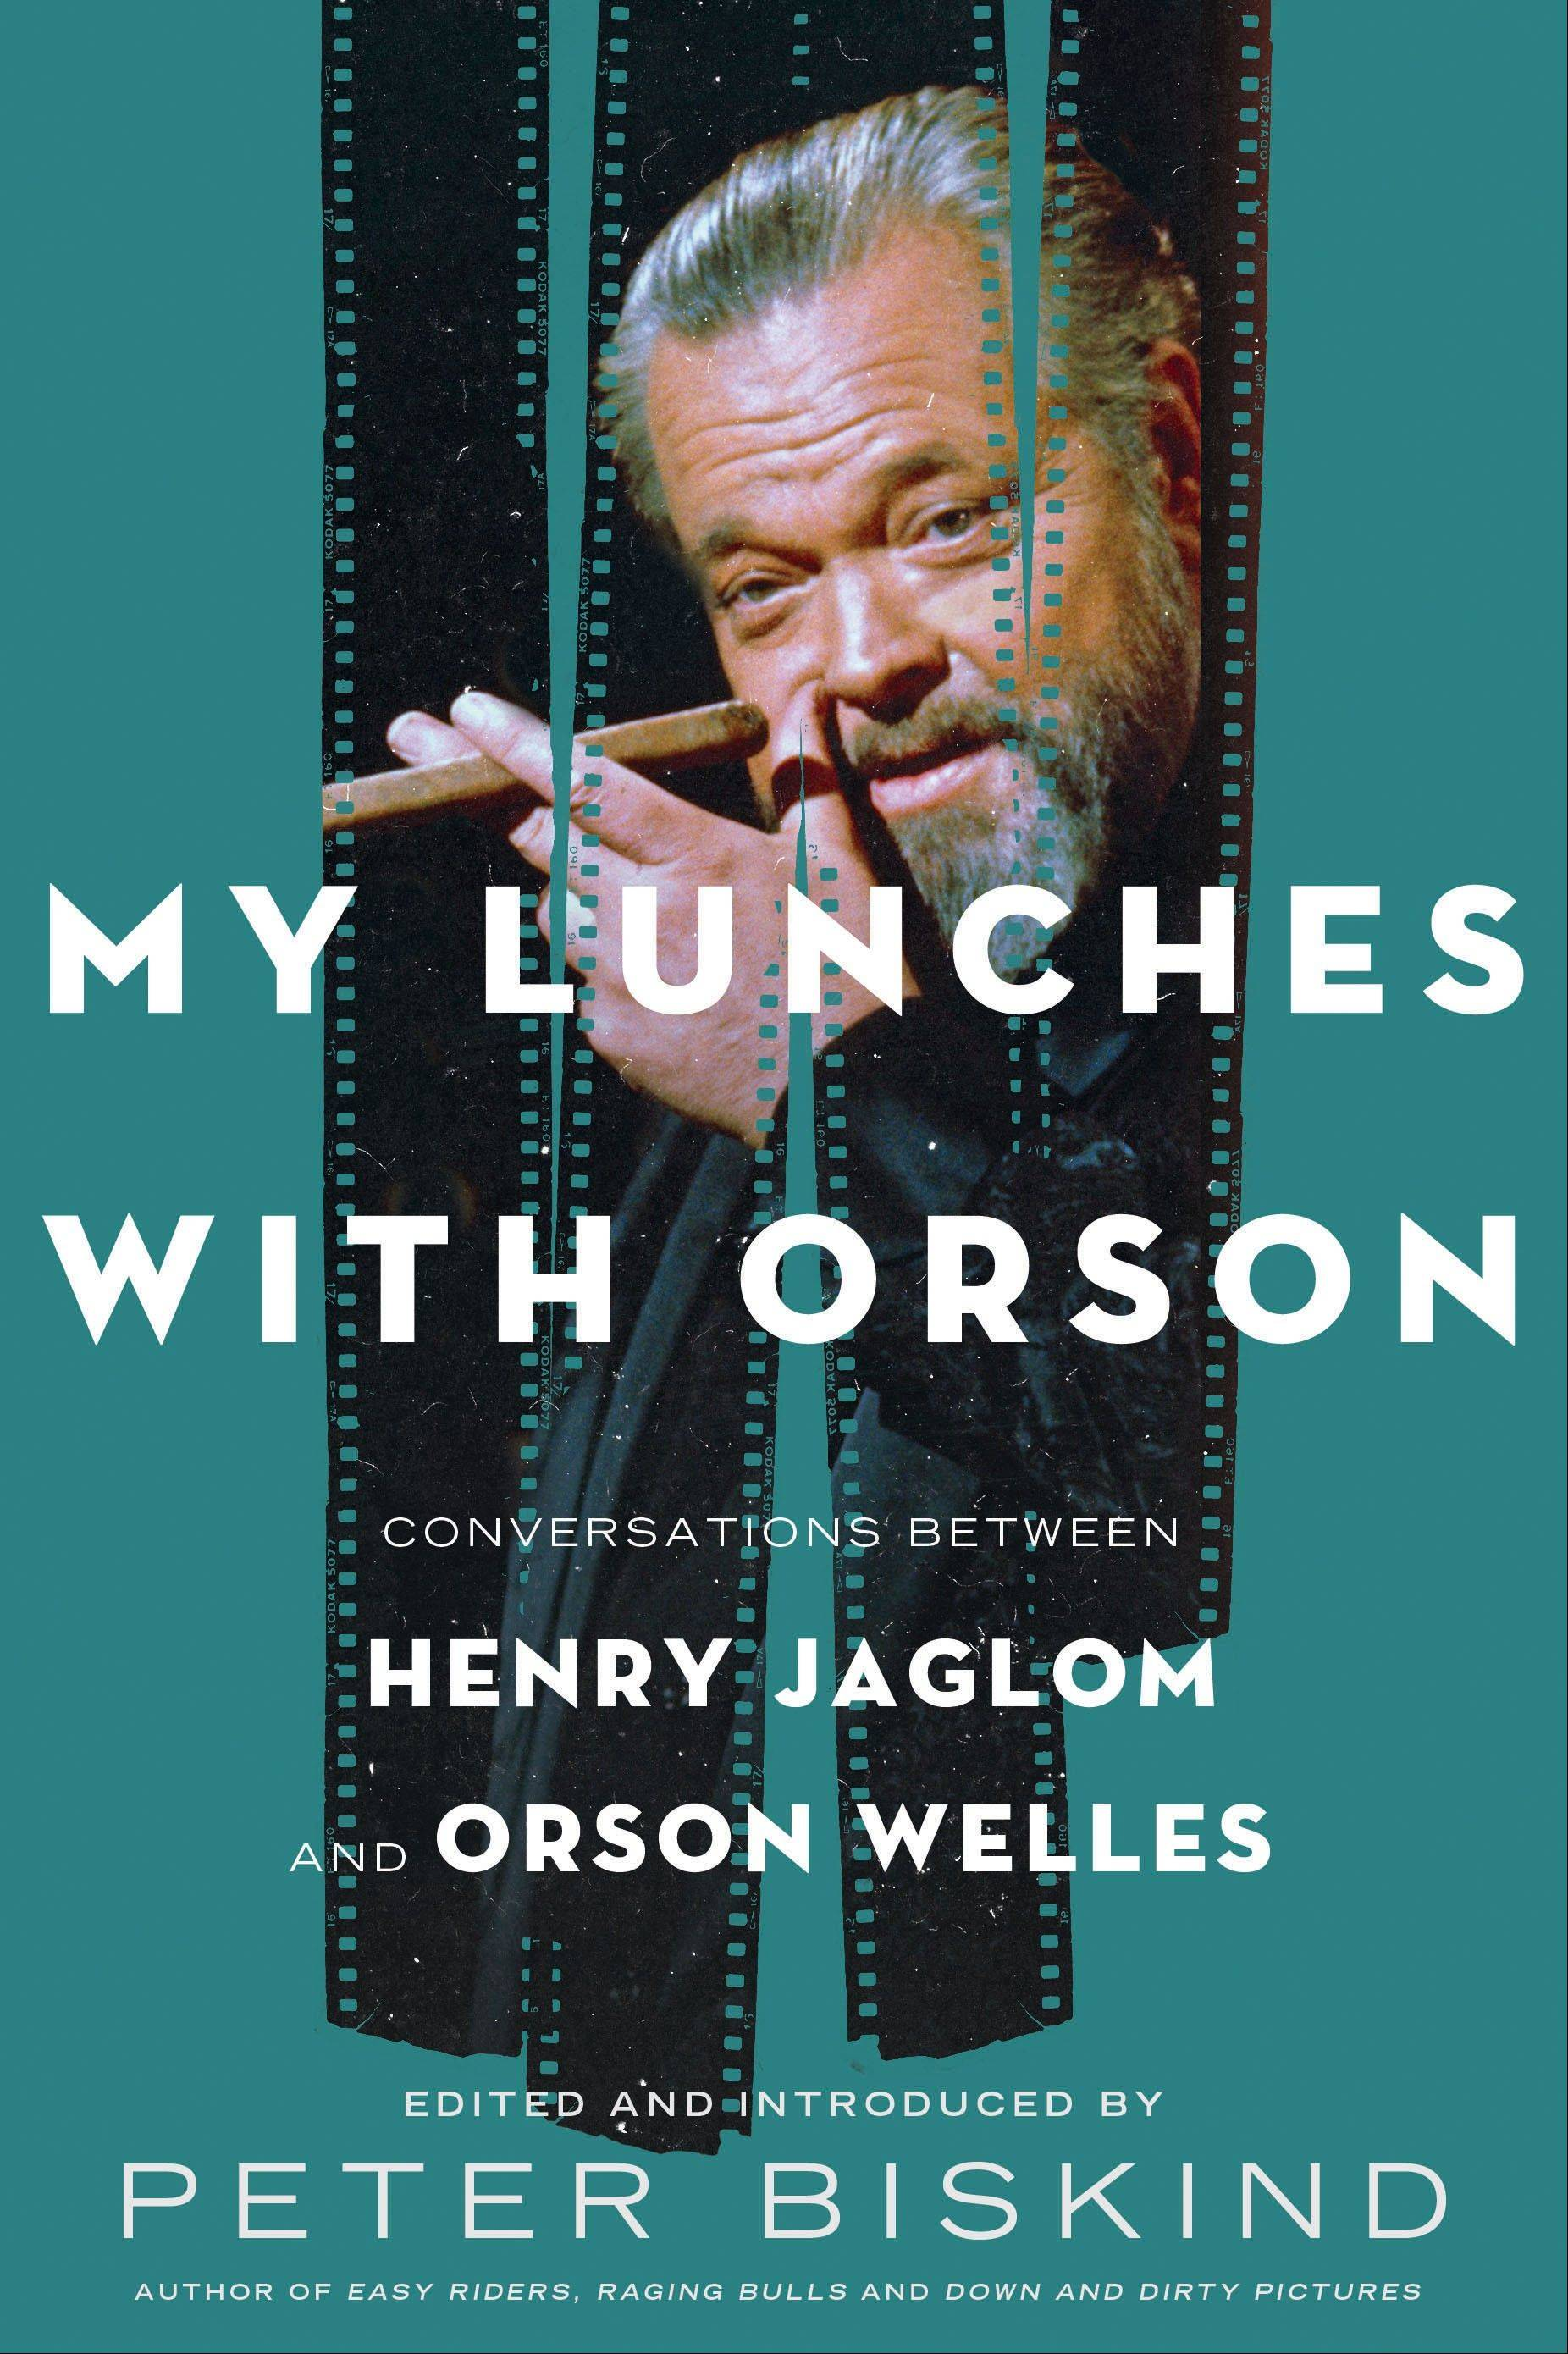 """My Lunches with Orson: Conversations Between Henry Jaglom and Orson Welles"" edited by Peter Biskind"